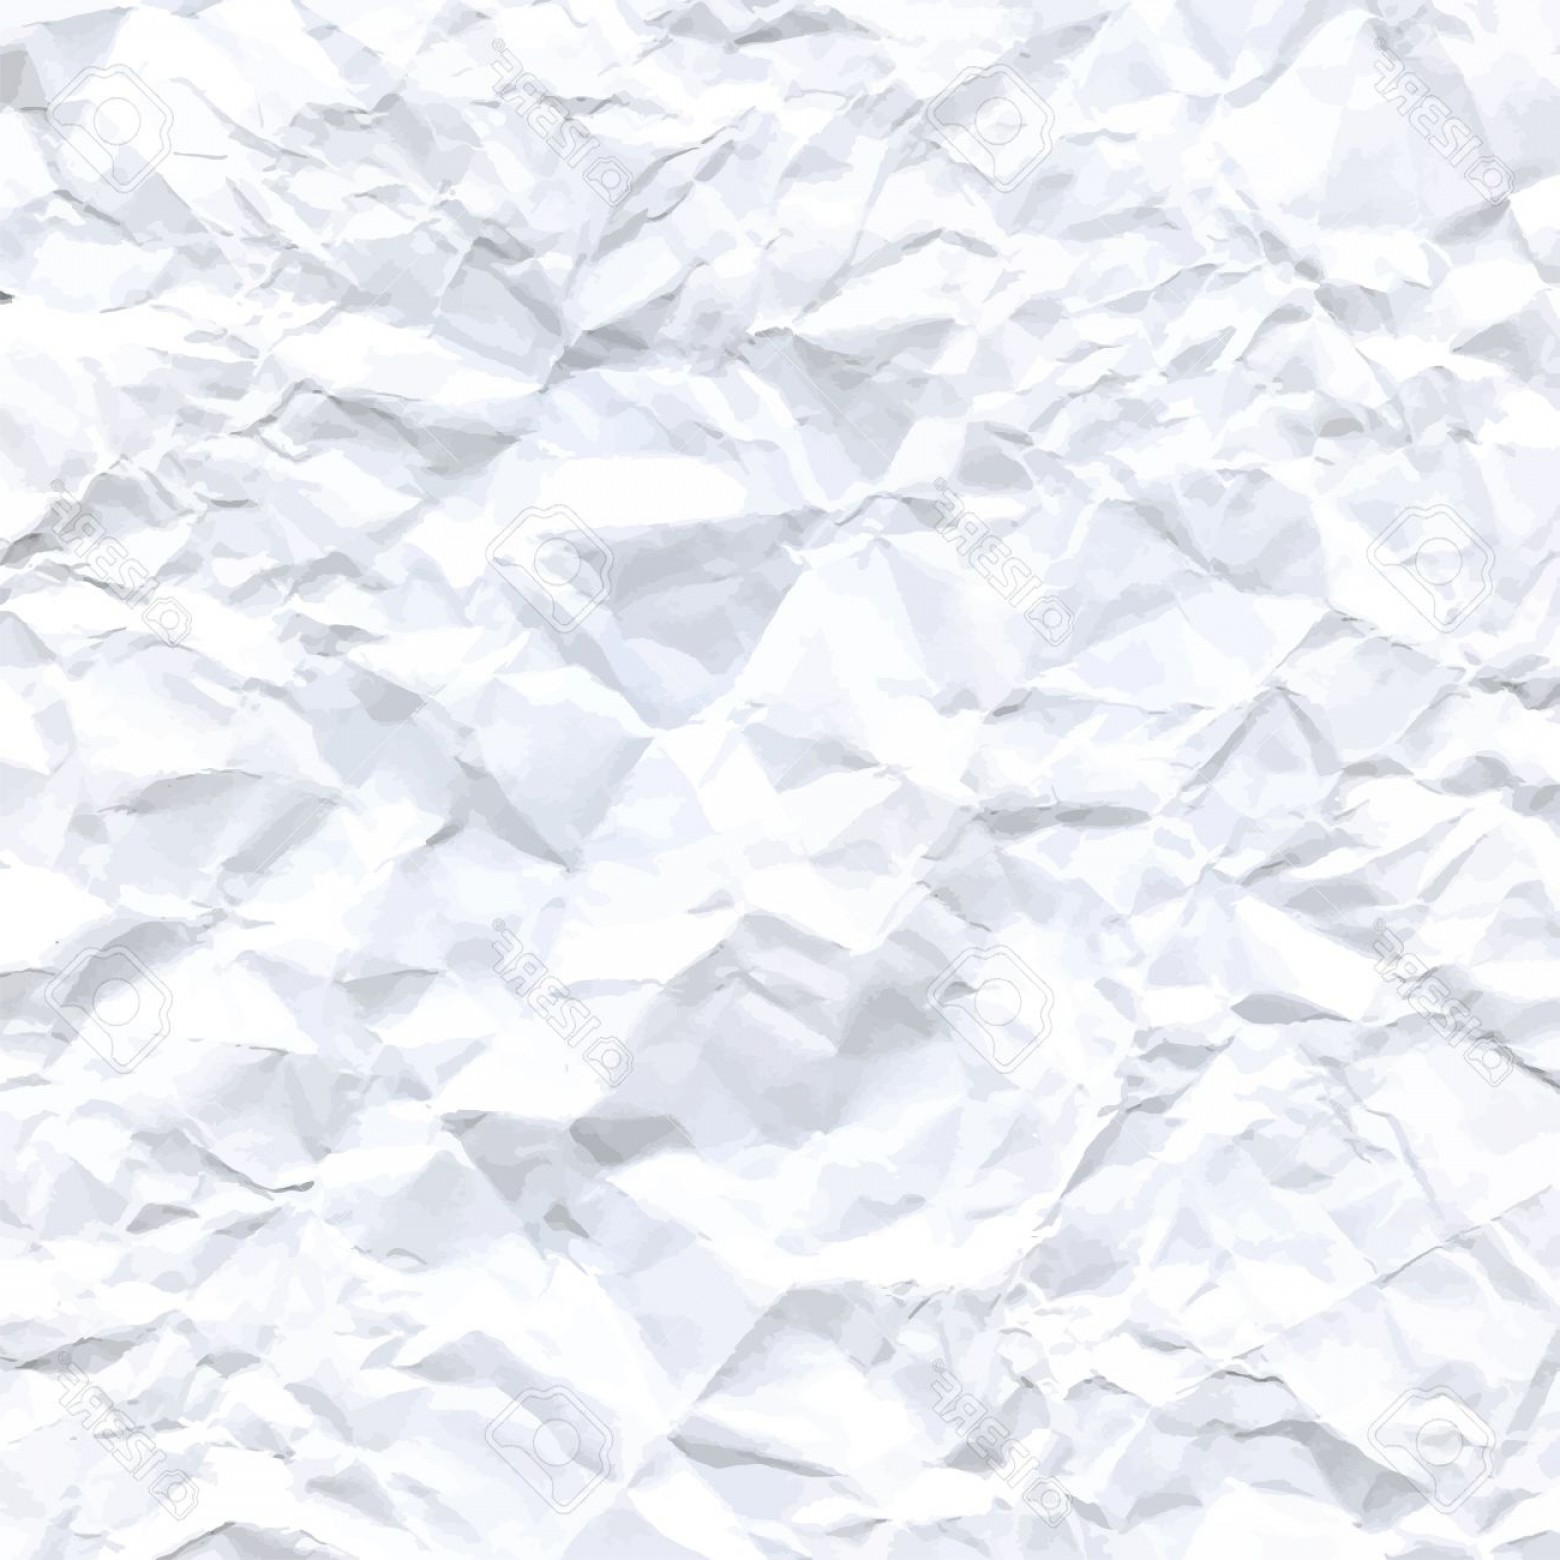 Free Textures Clipart crumpled paper, Download Free Clip Art on ... graphic free library